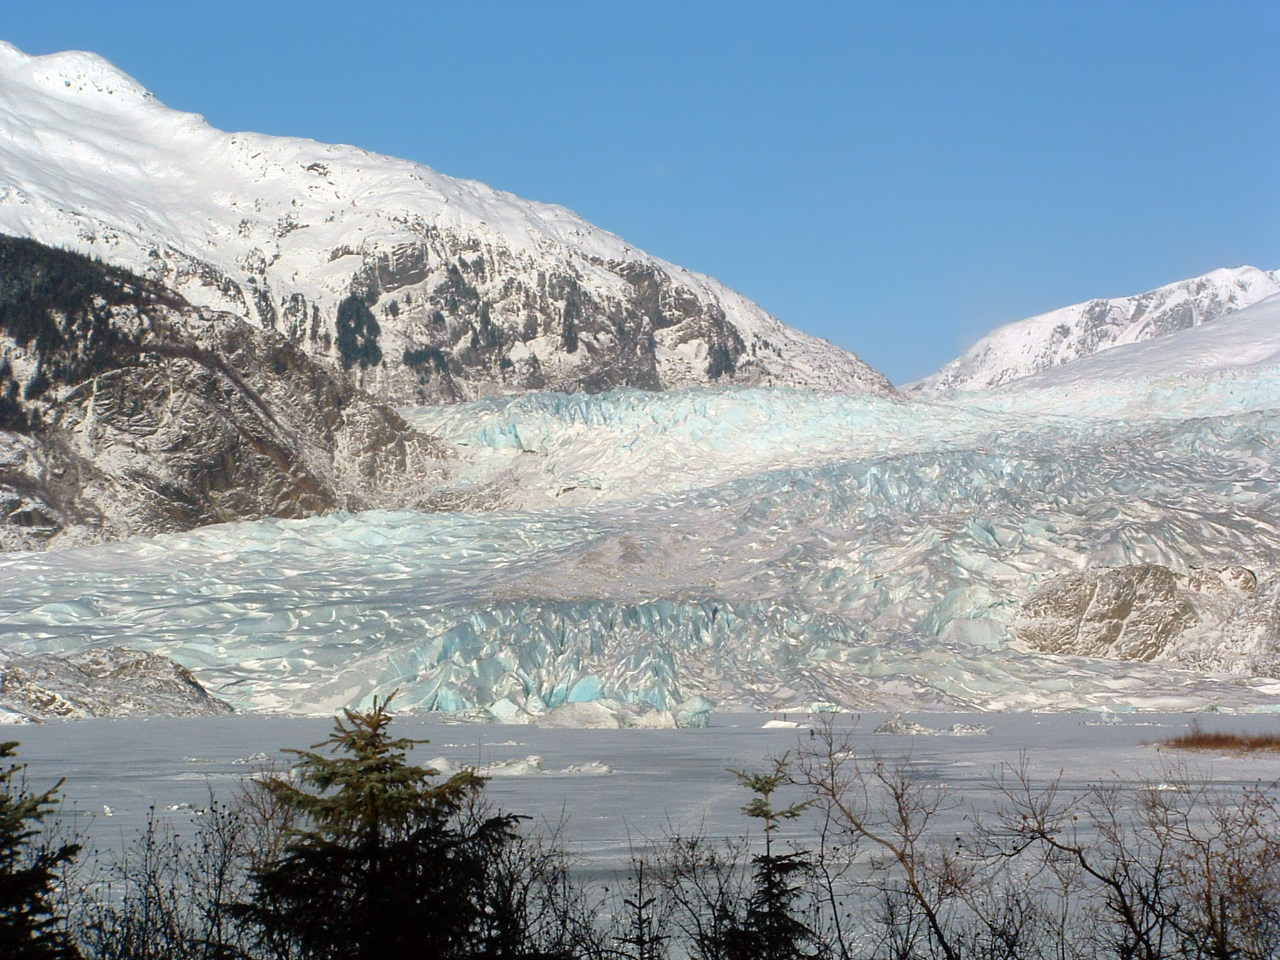 View of Mendenhall Glacier in wintertime. (Creative Commons photo)